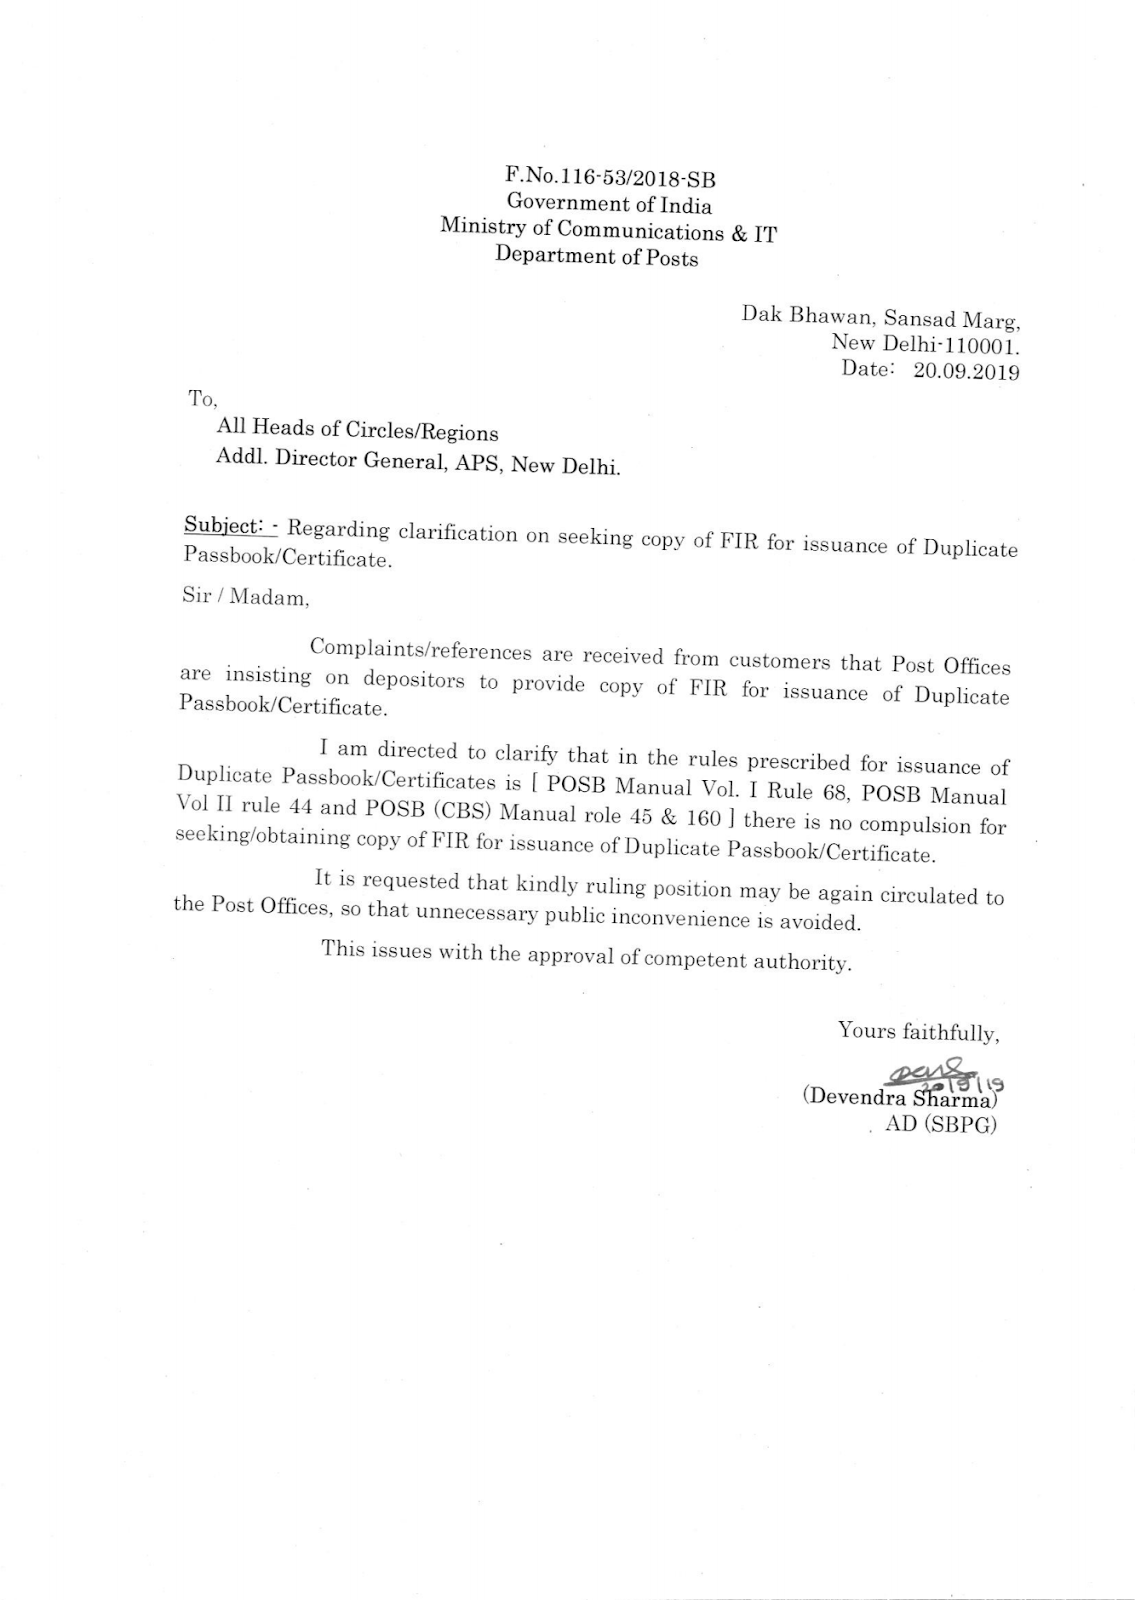 Clarification on seeking copy of FIR for issue of duplicate Passbook